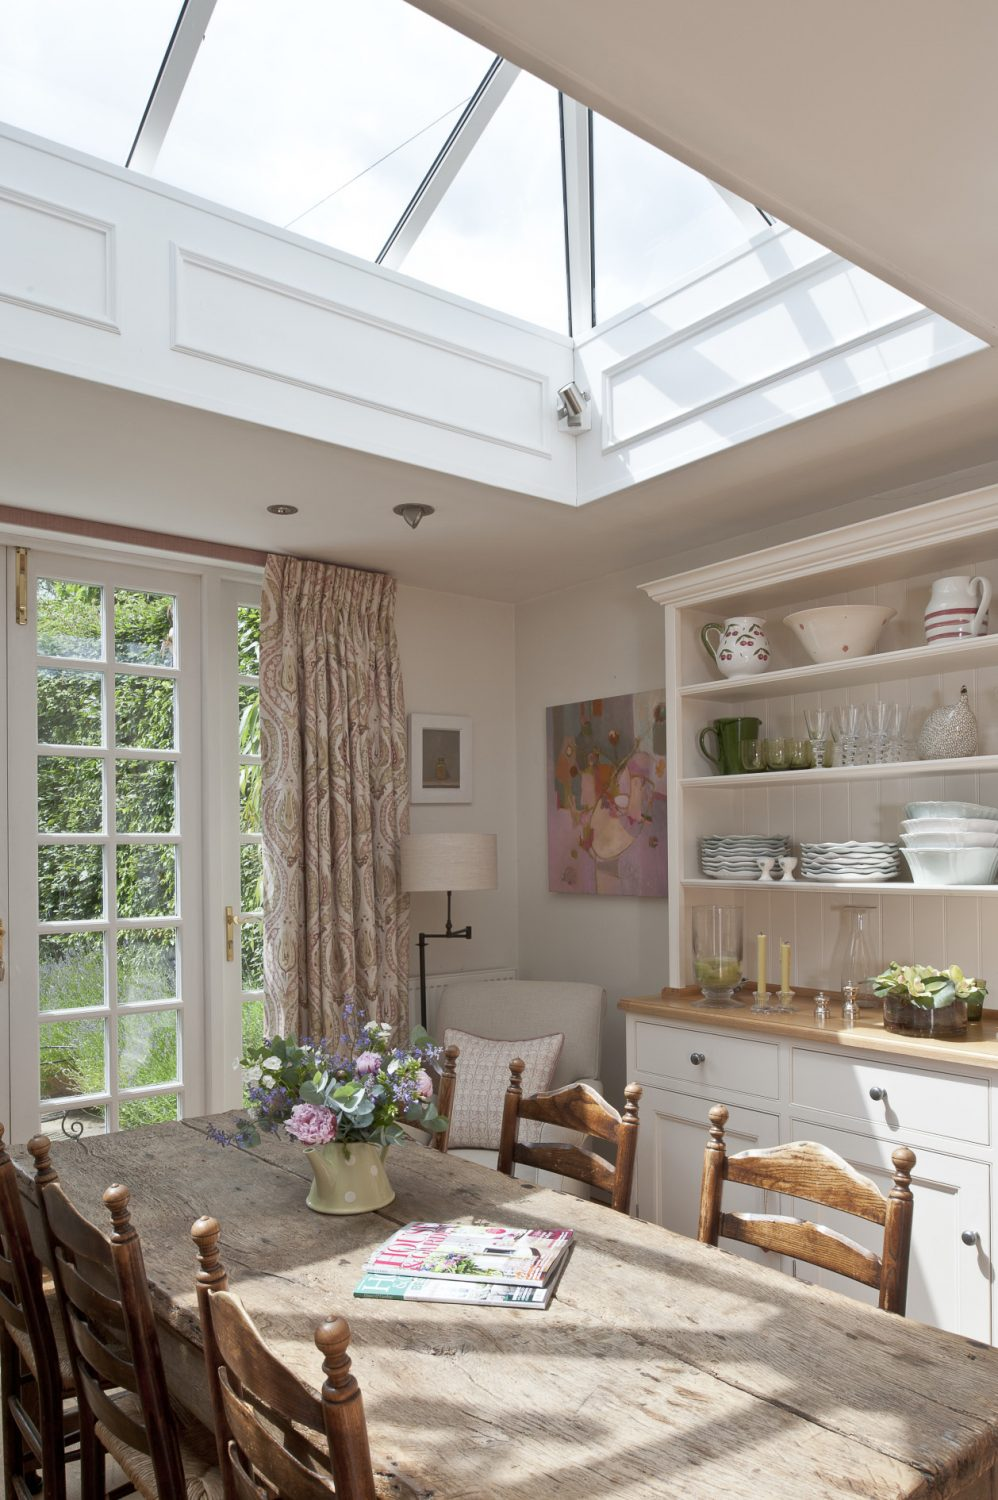 The kitchen table was destined for a home in Corfu but now resides in an ideal spot in Kent